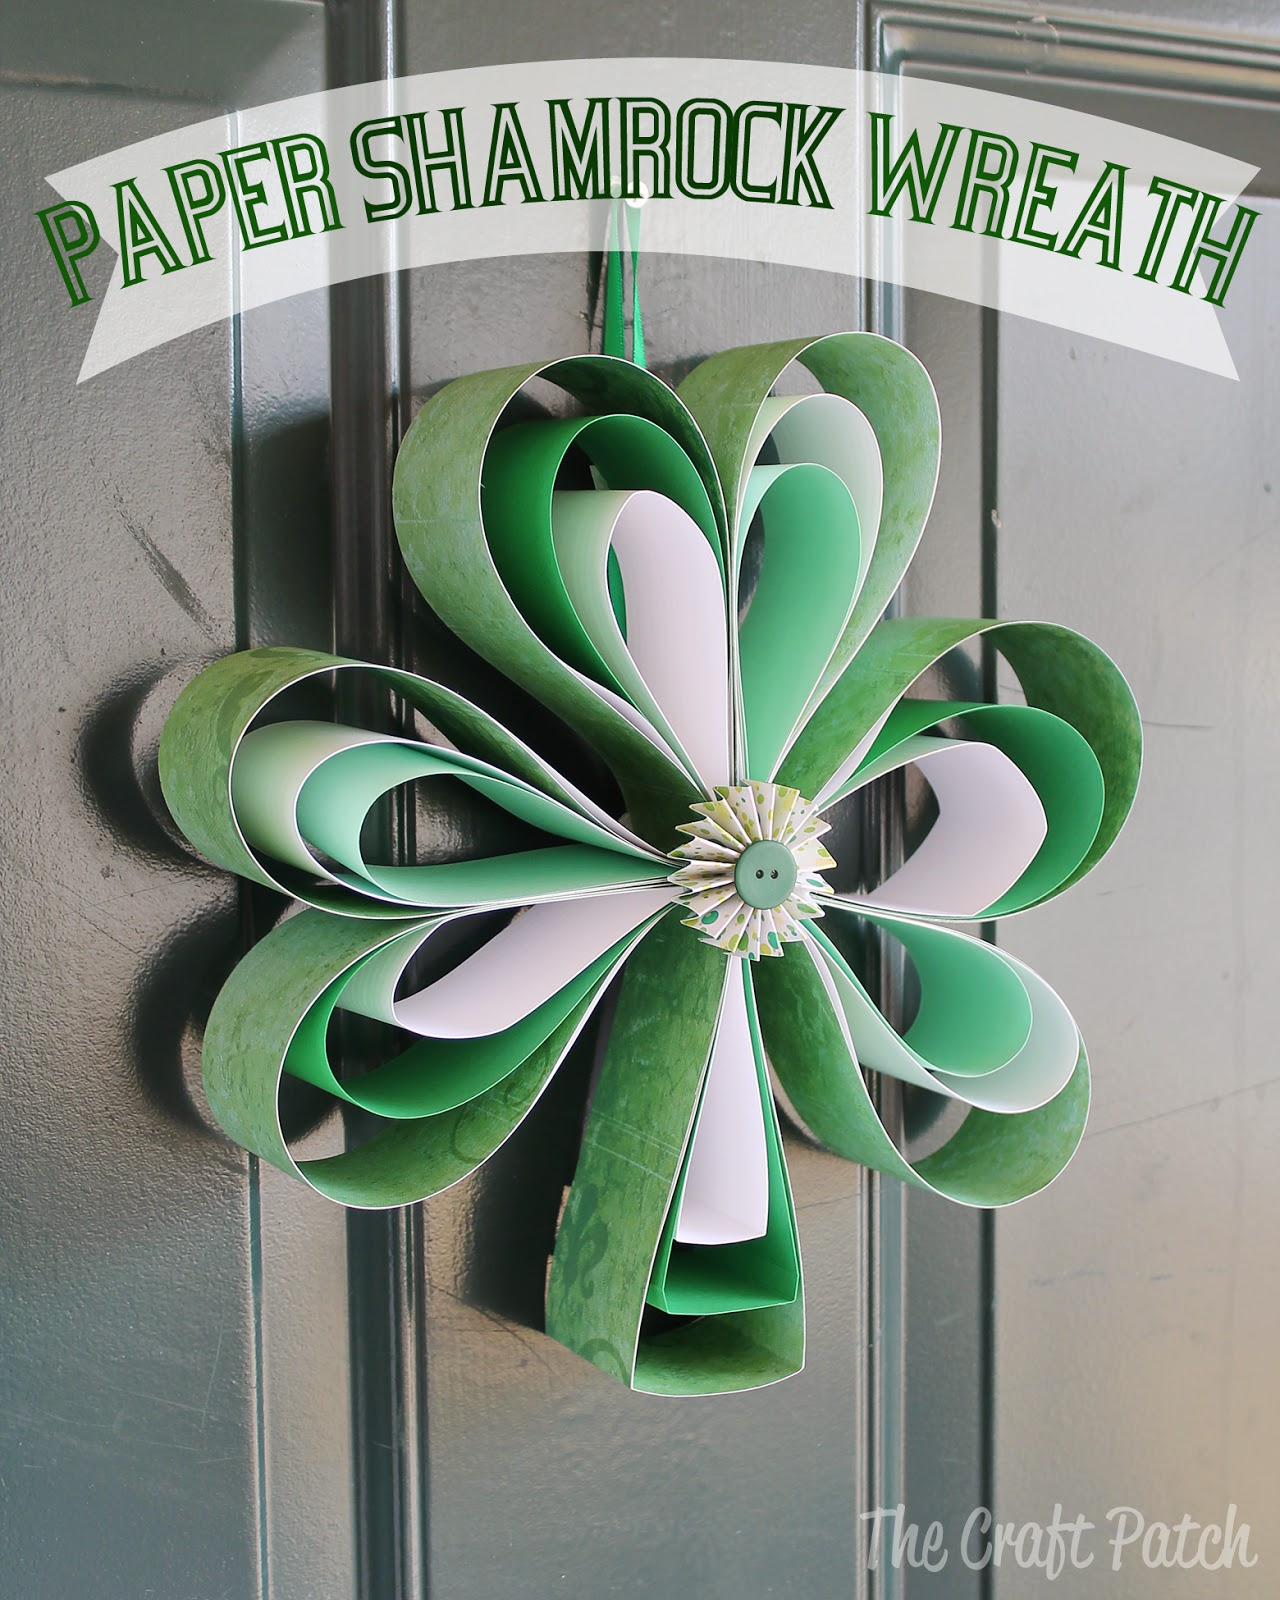 Dress Up Your Home For St. Patrick's Day by Making This Cute Wreath Out of Scrapbook Paper!1